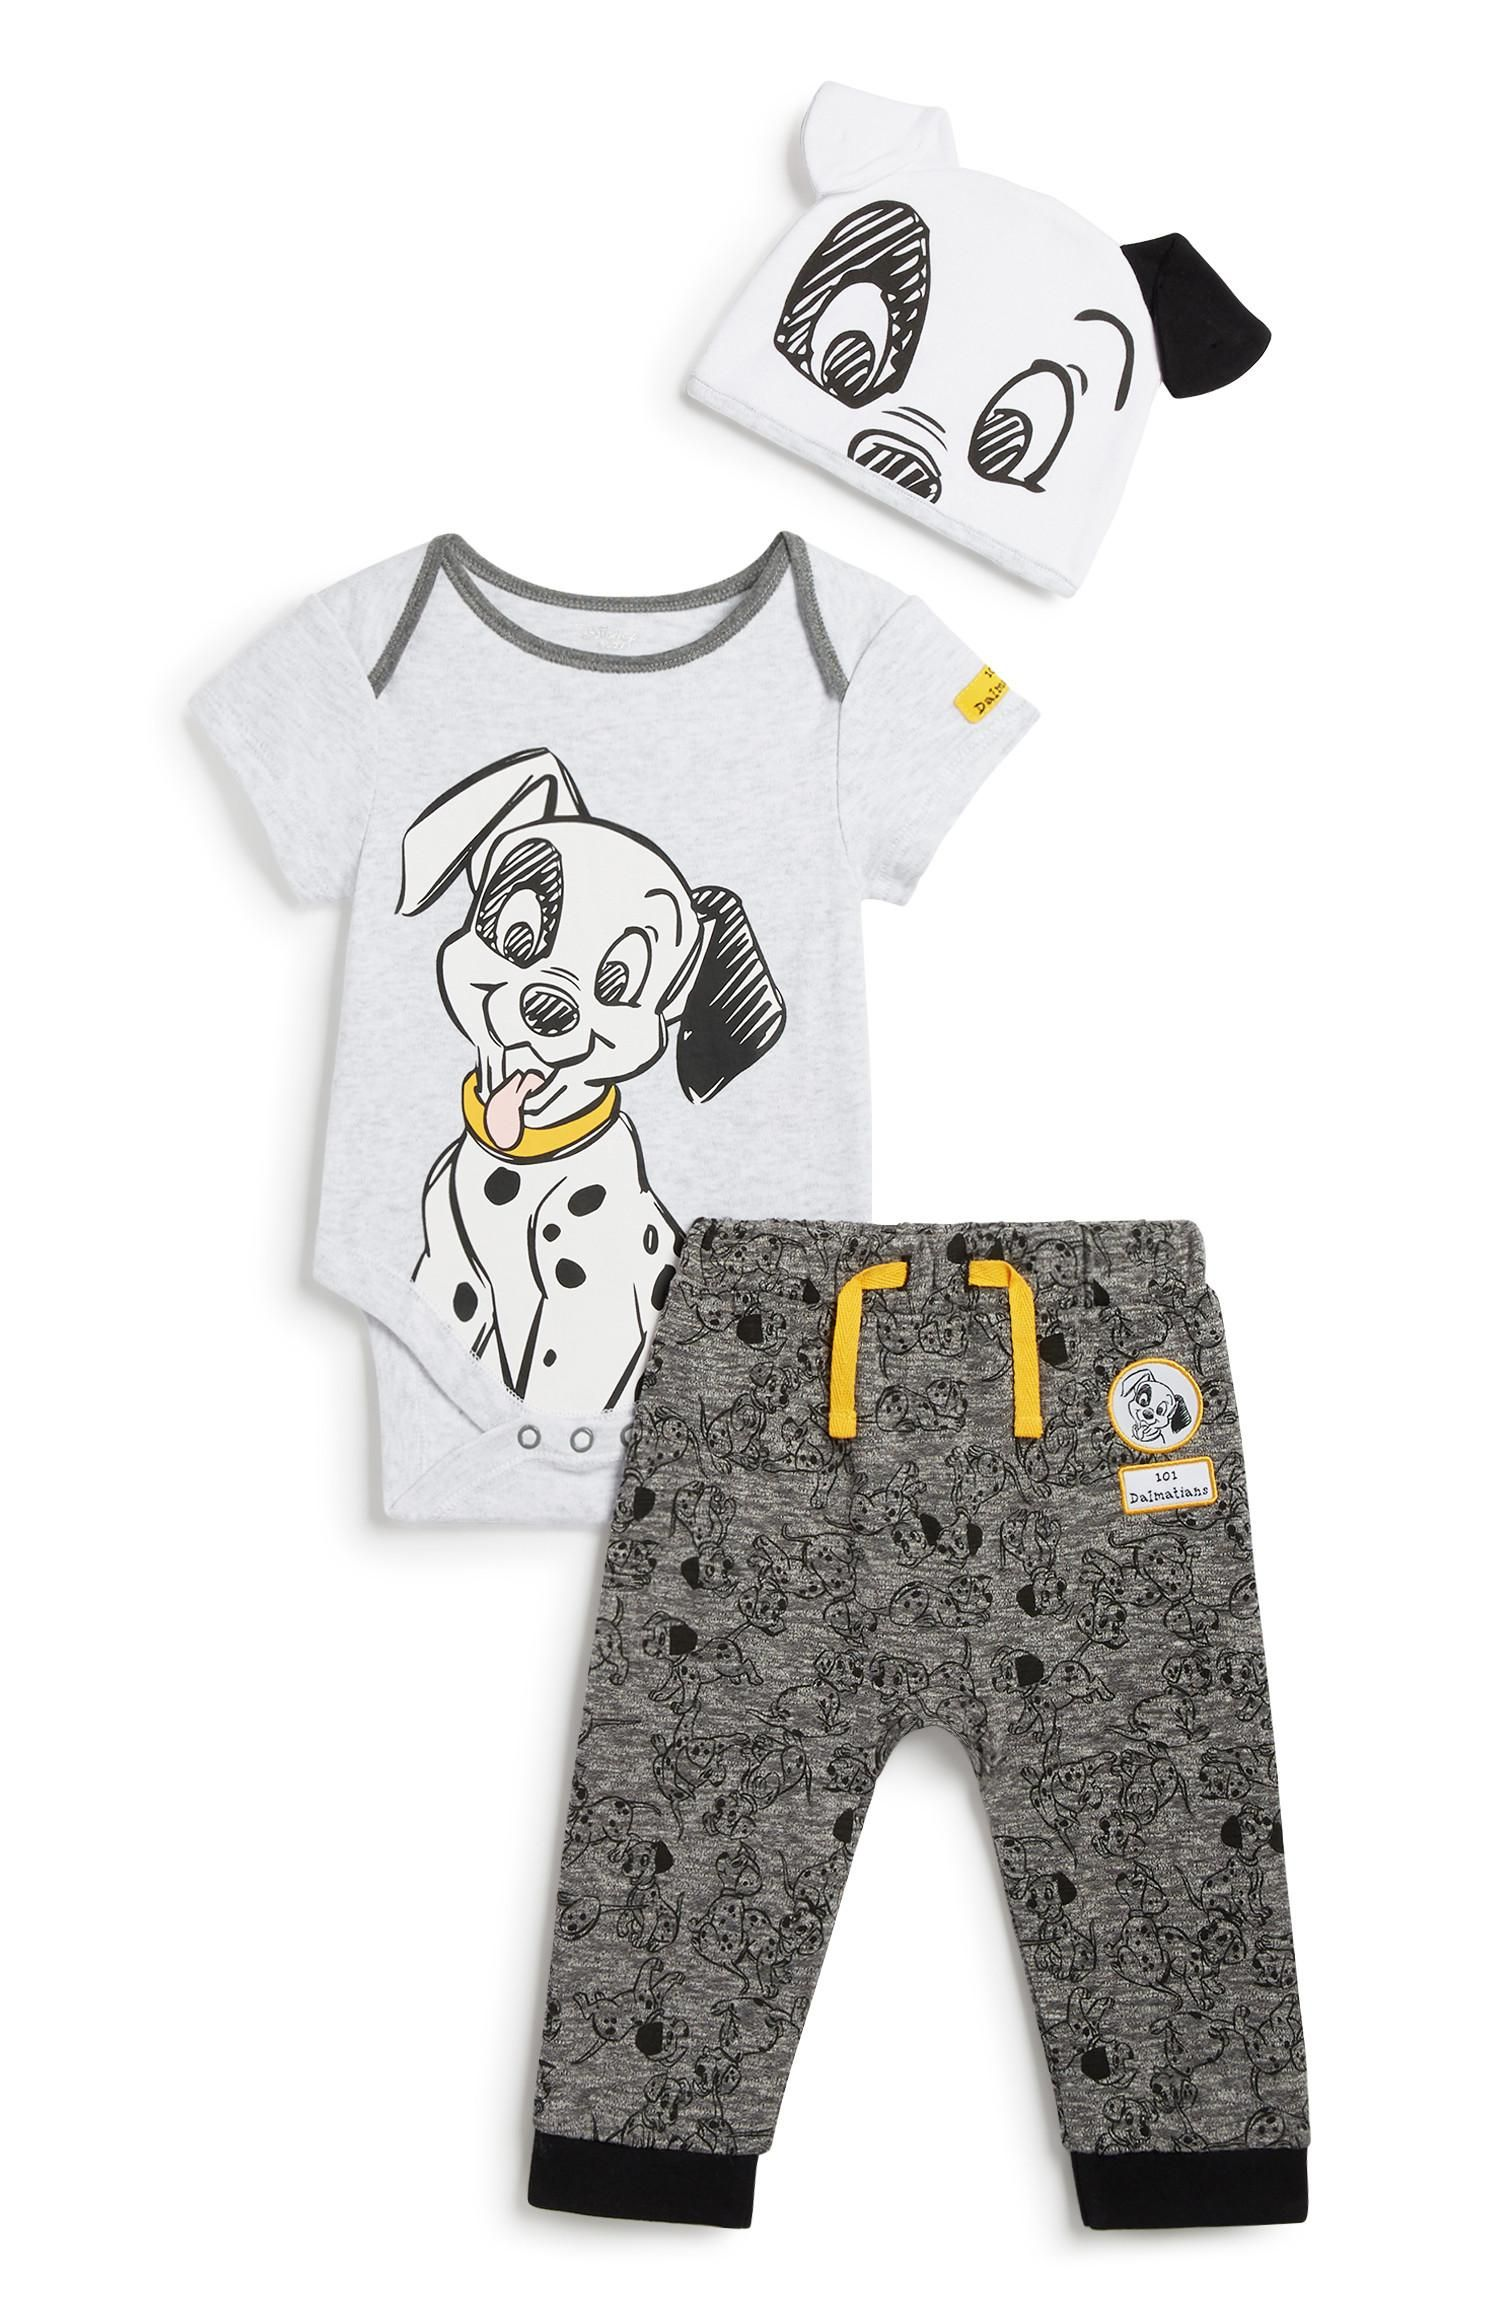 Primark 101 Dalmatians 3pc Outfit Set Disney Baby Clothes Disney Toddler Outfits Baby Boy Outfits